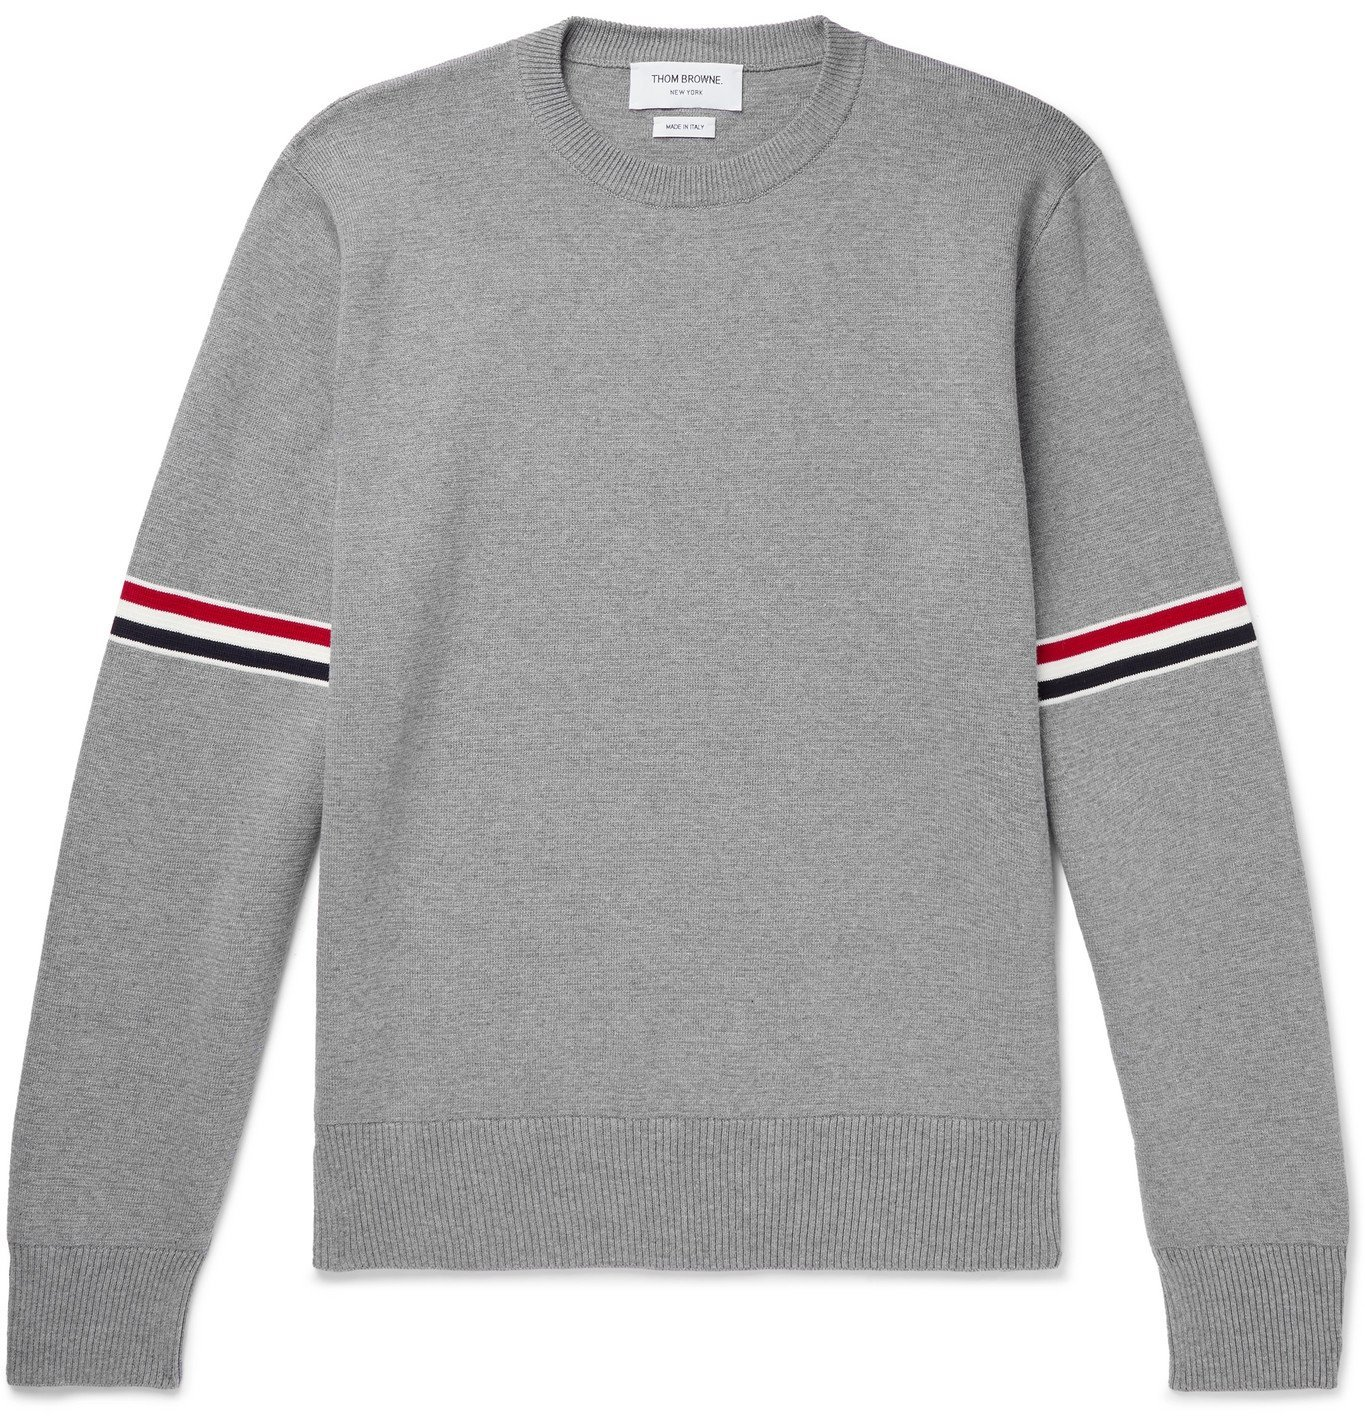 THOM BROWNE - Slim-Fit Striped Cotton Sweater - Gray